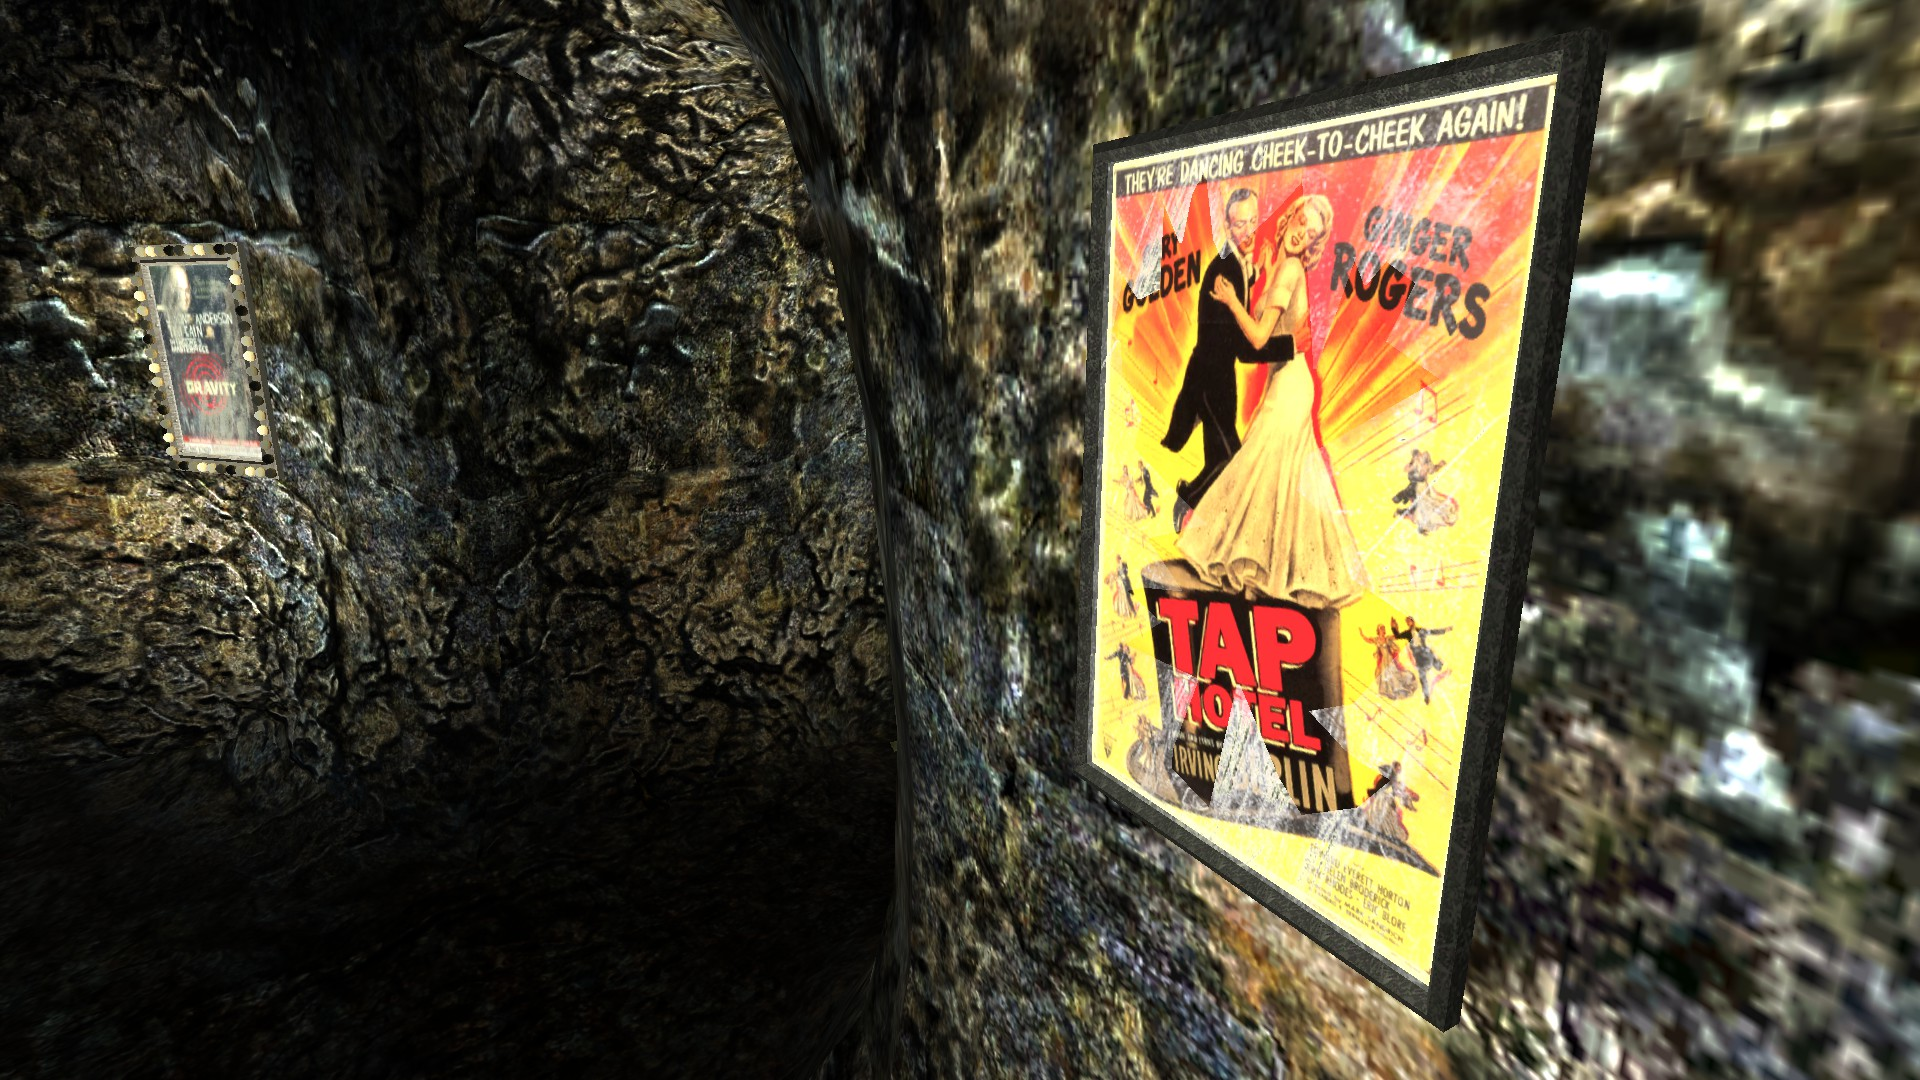 Poster in Gary's chamber has been replaced with Tap Hotel